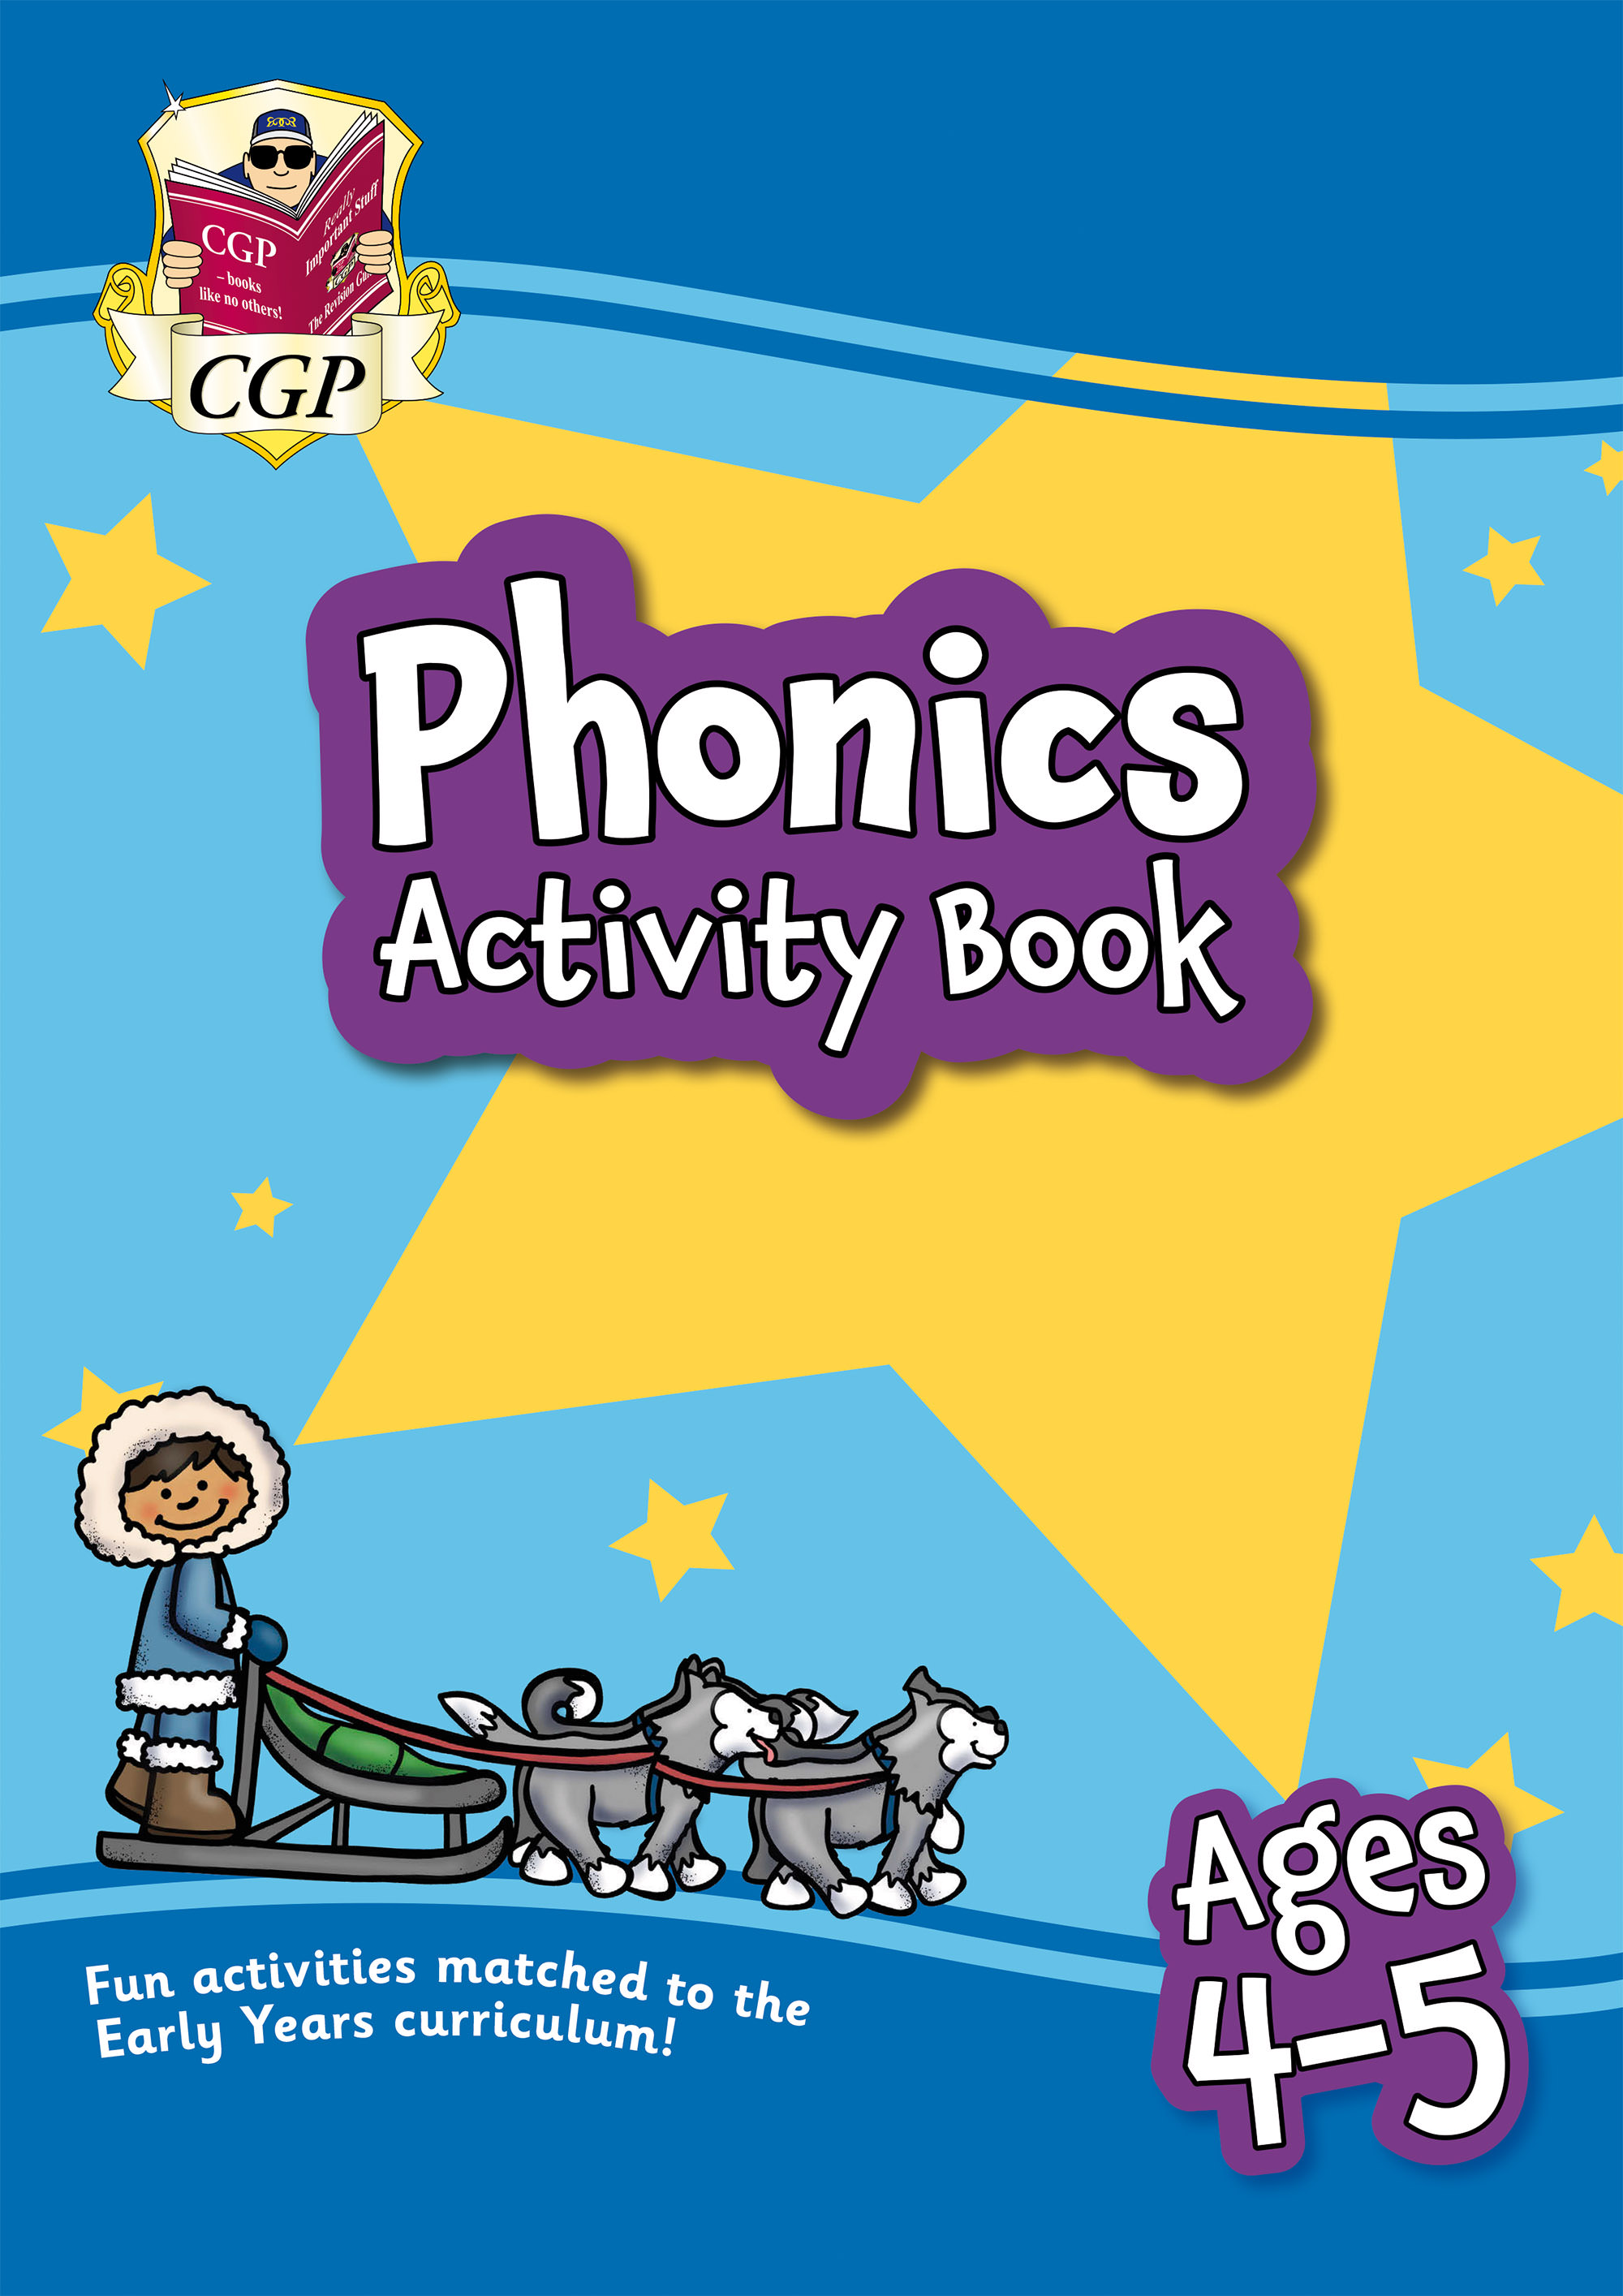 EPFROQ01D - New Phonics Activity Book for Ages 4-5: Perfect for Catch-Up and Home Learning